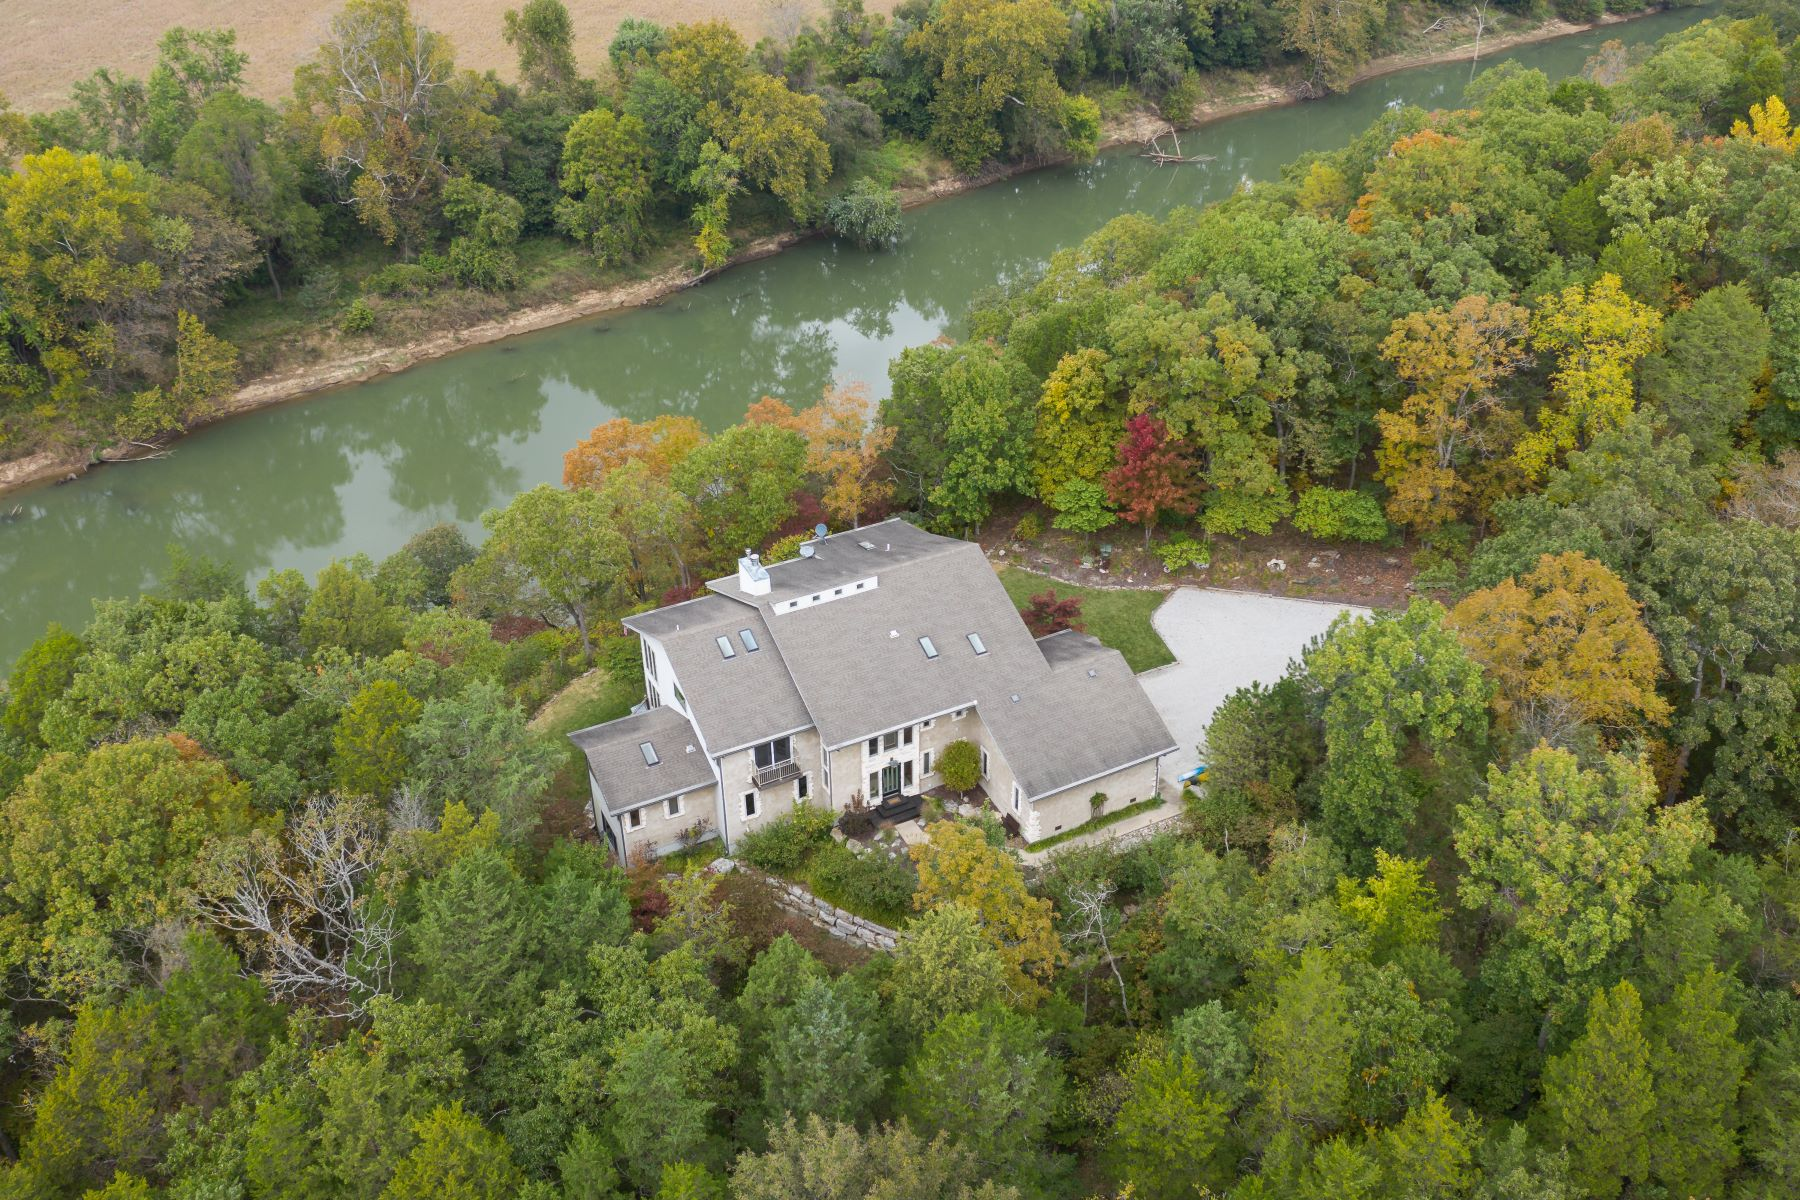 Single Family Homes for Sale at Million Dollar Views and Custom Riverfront Home on 3.5+ acres 7815 Jim Weber Road Eureka, Missouri 63025 United States